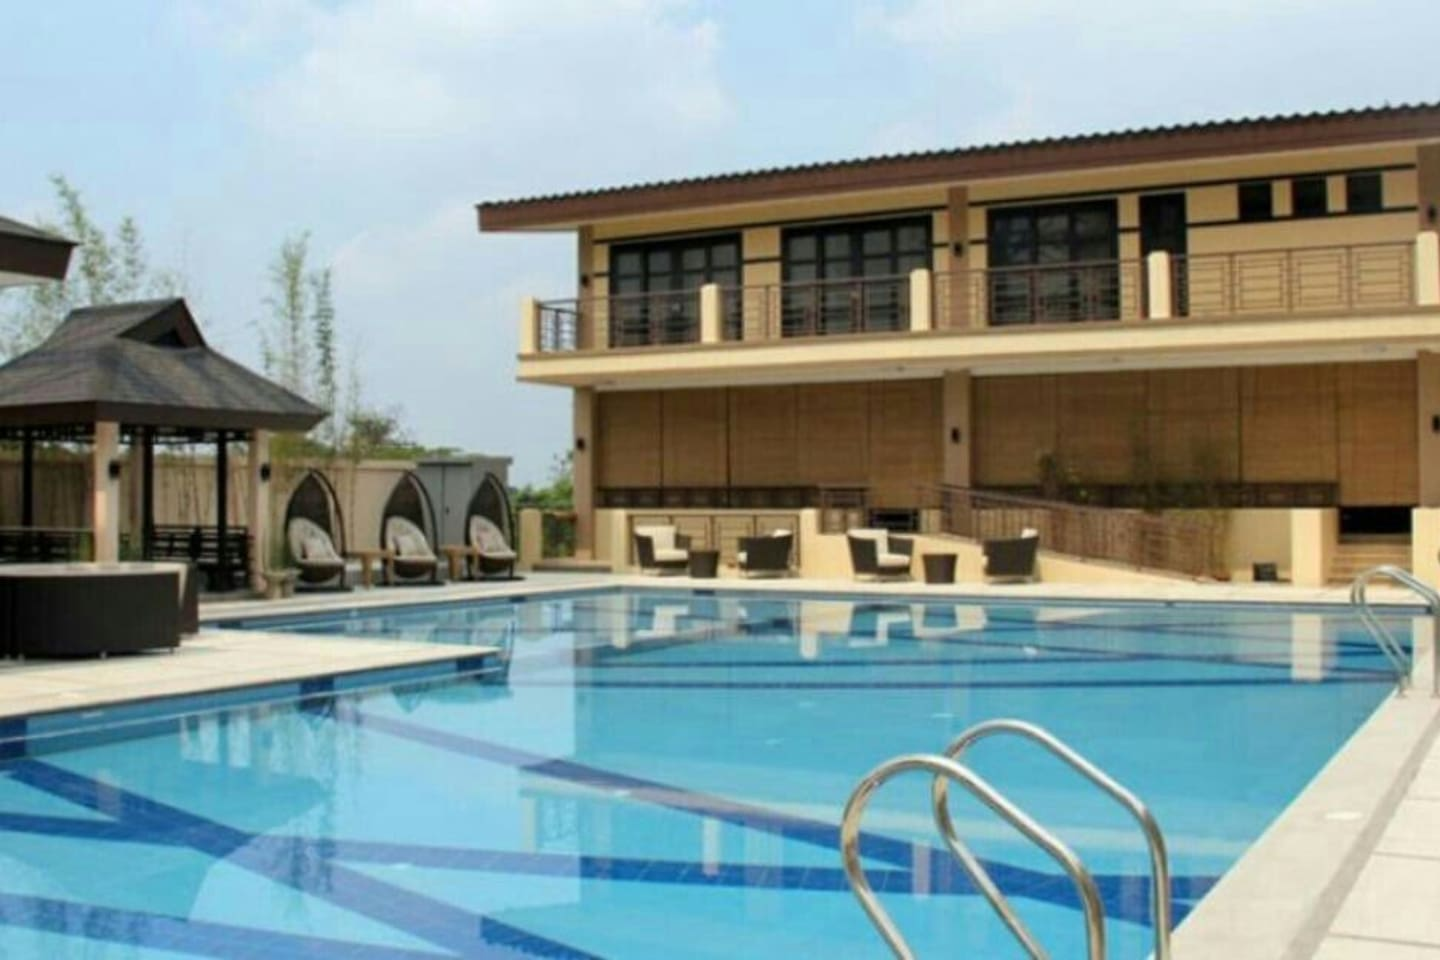 Swimming pool and clubhouse with free wifi access till 11pm